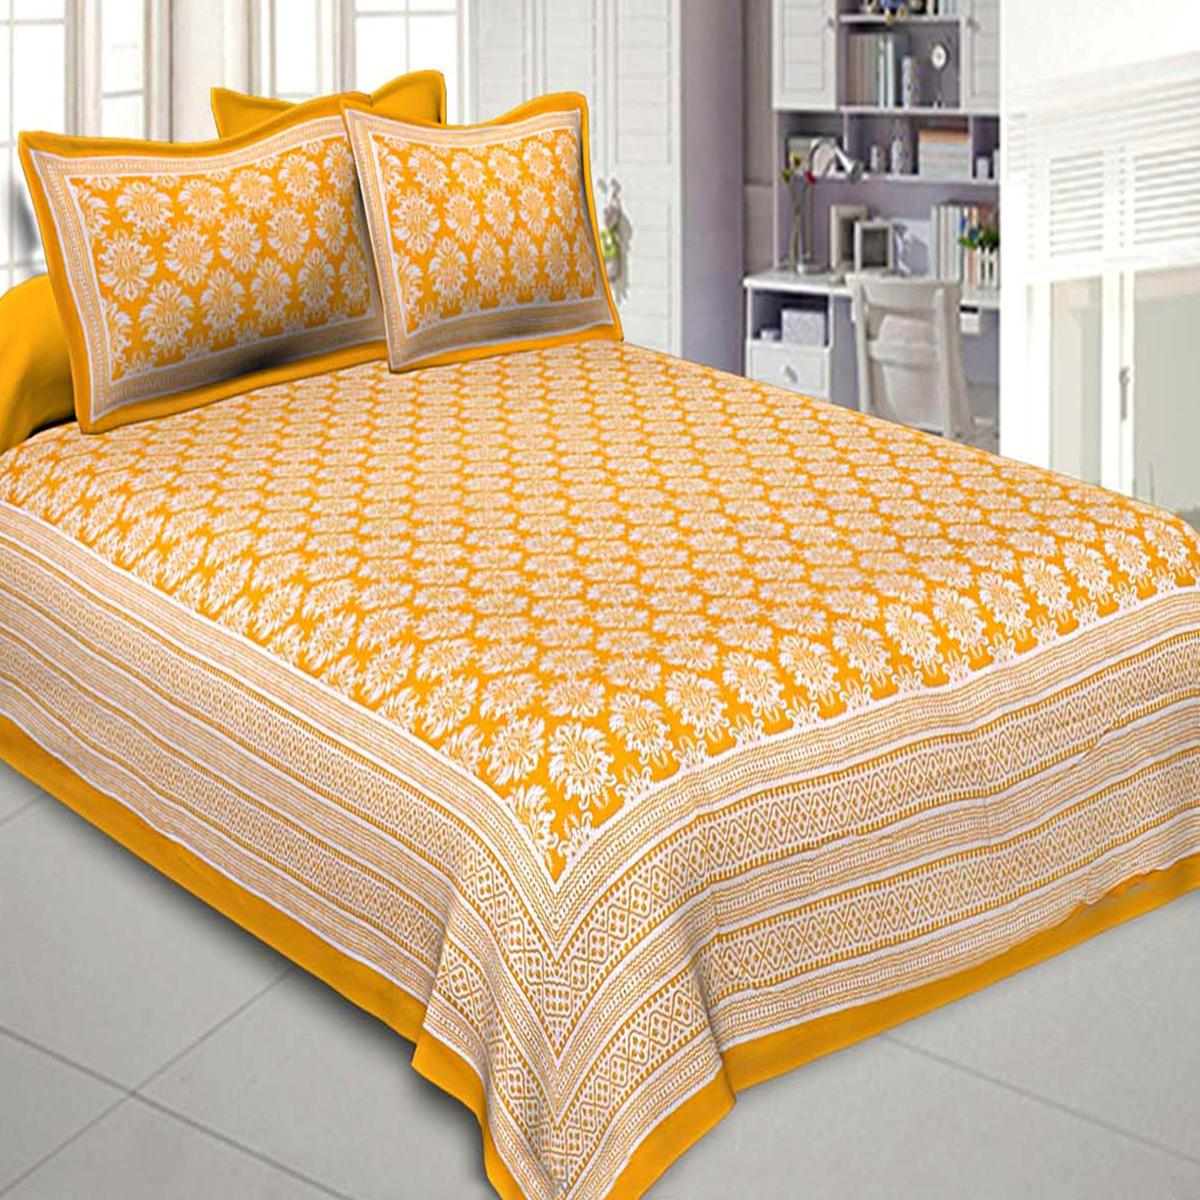 Imposing Yellow Colored Floral Printed Cotton Double Bedsheet With Pillow Cover